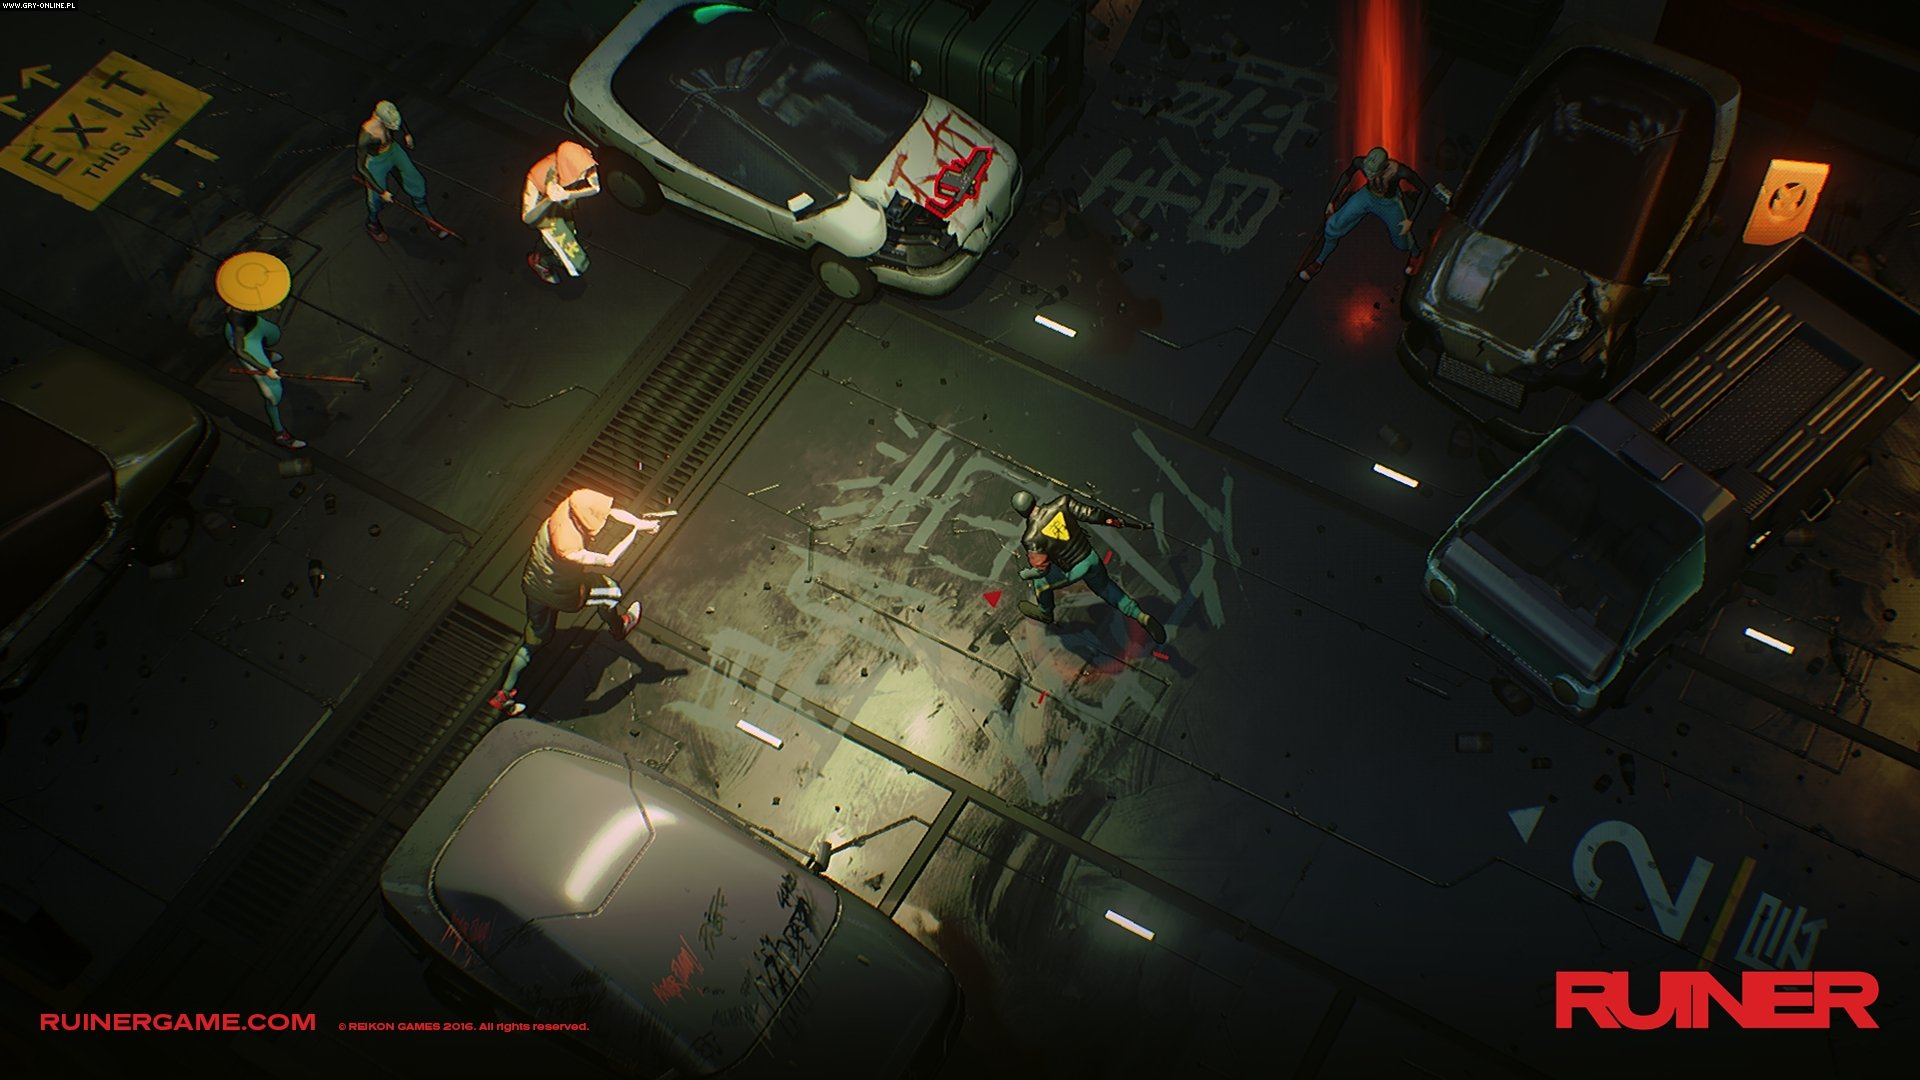 Ruiner PC, PS4, XONE Games Image 12/12, Reikon Games, Devolver Digital